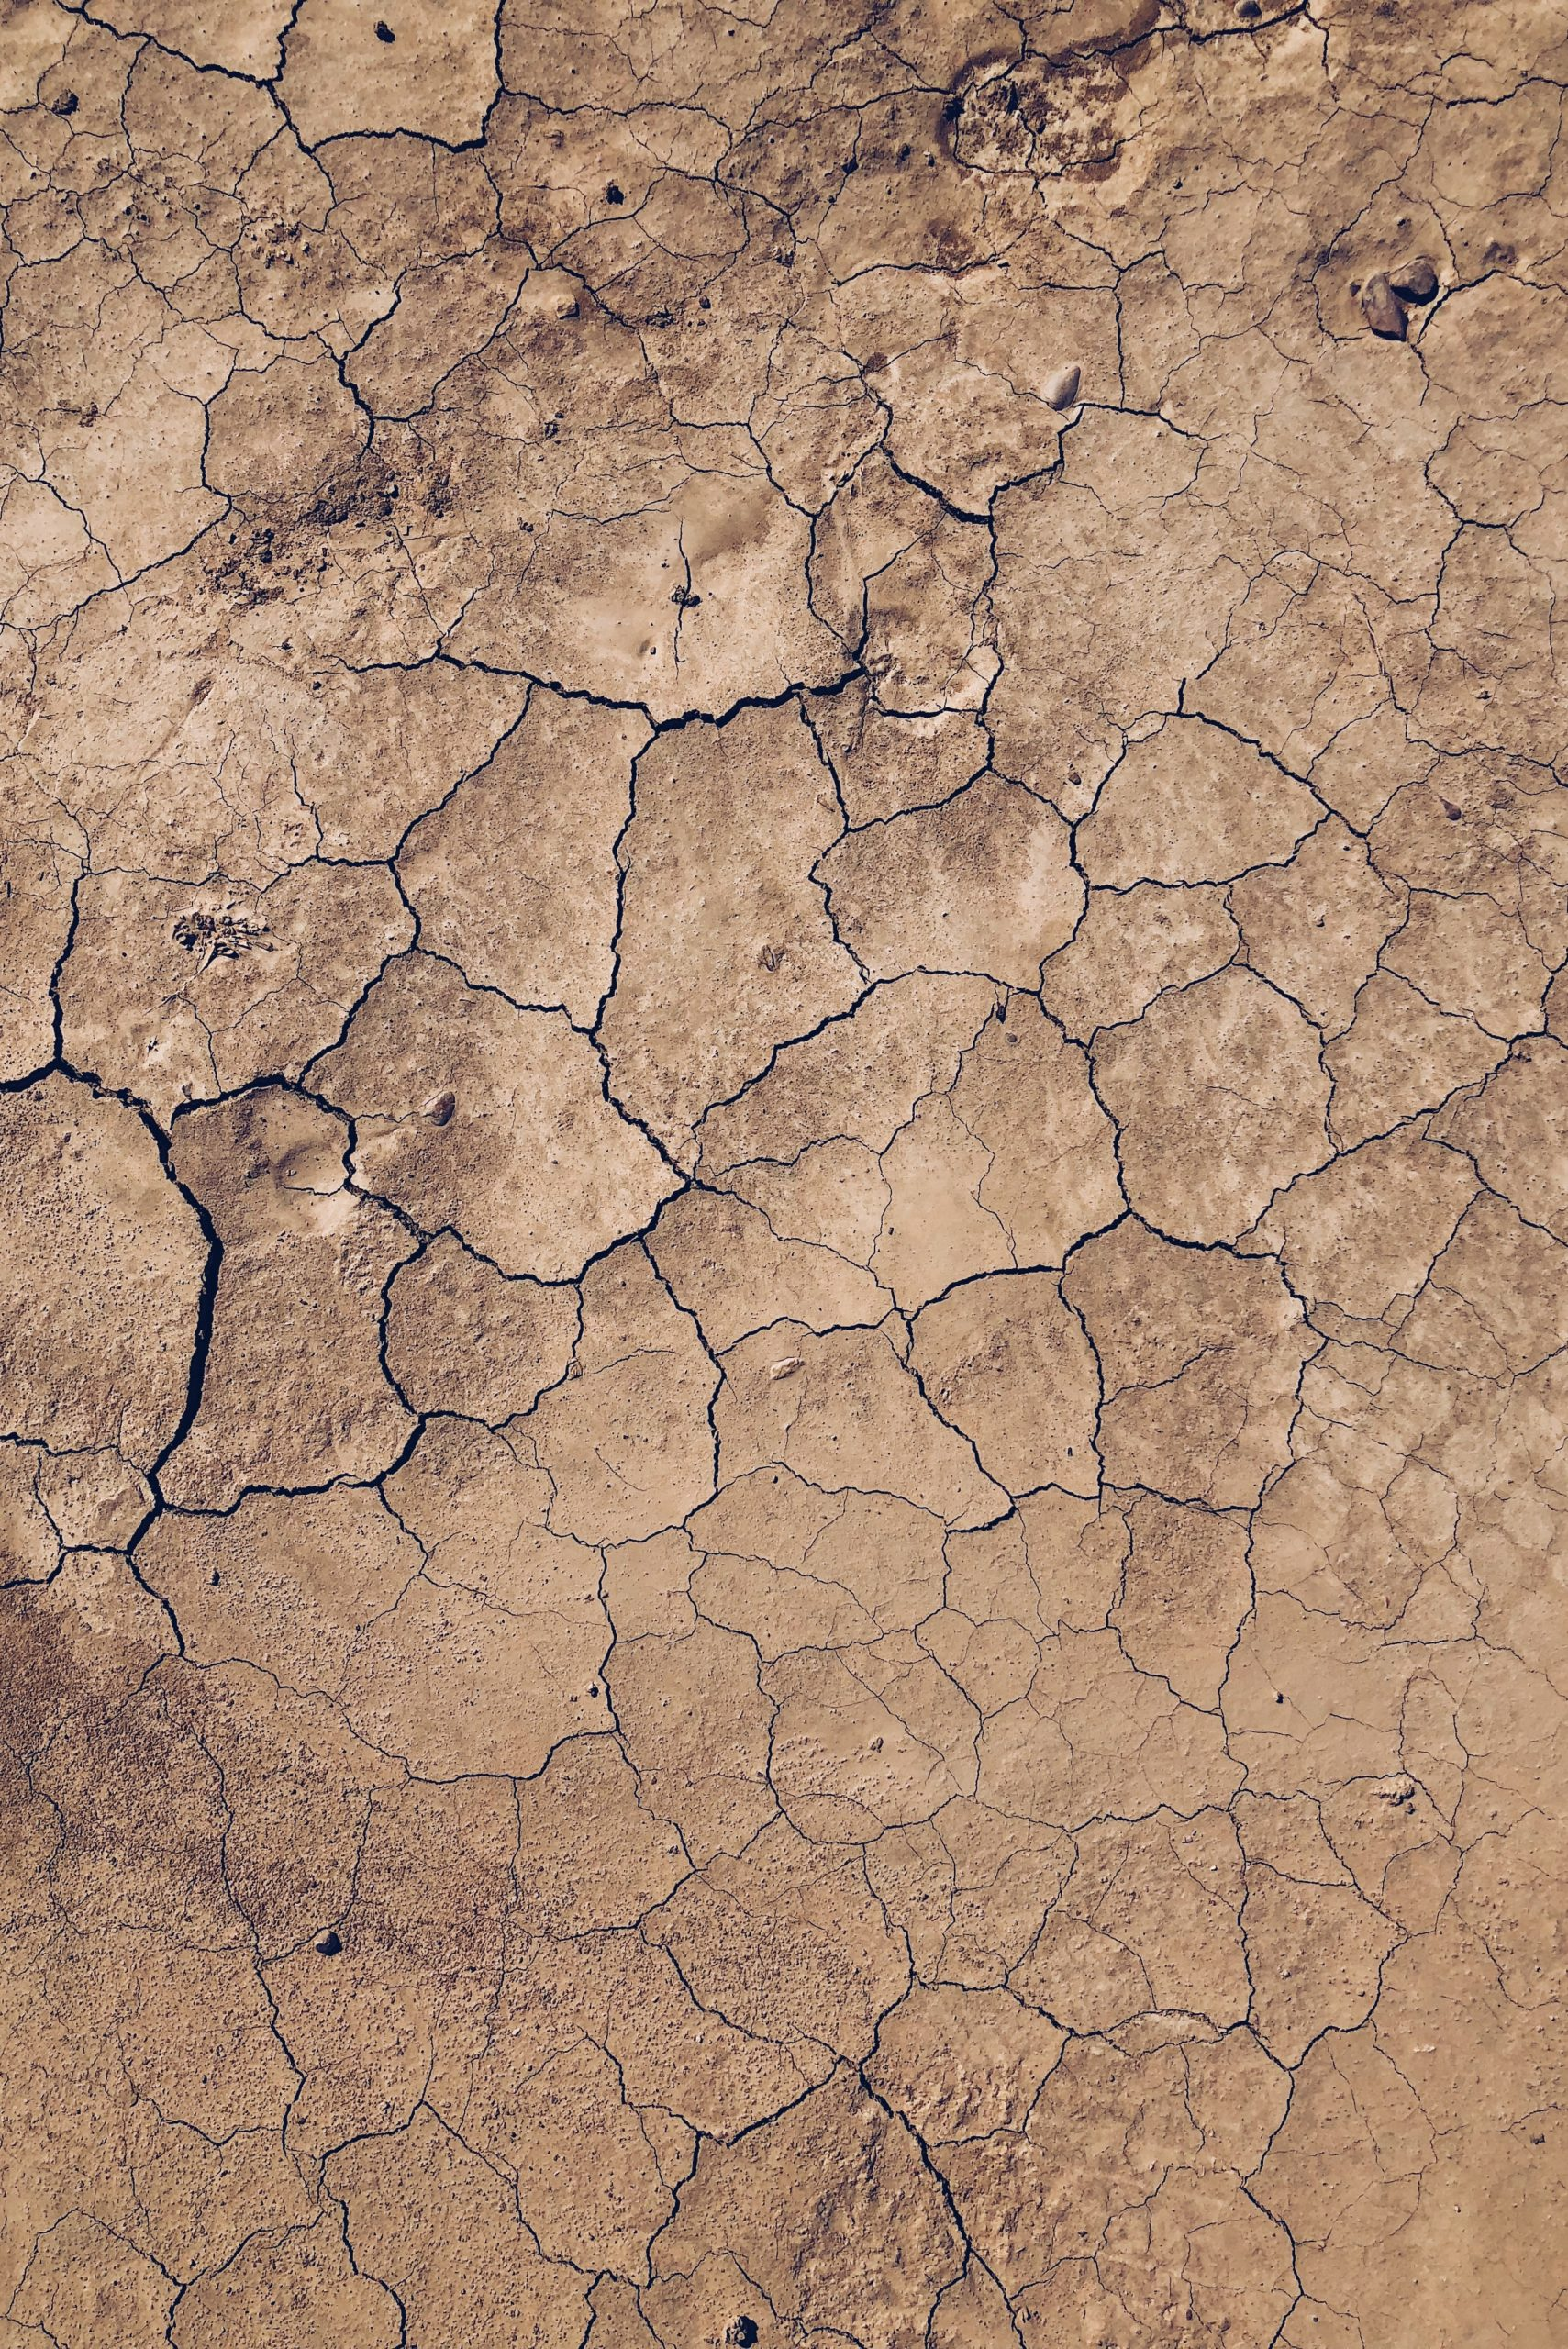 The Salt Lake Chamber is calling on local businesses to help save water during this period of Utah drought.